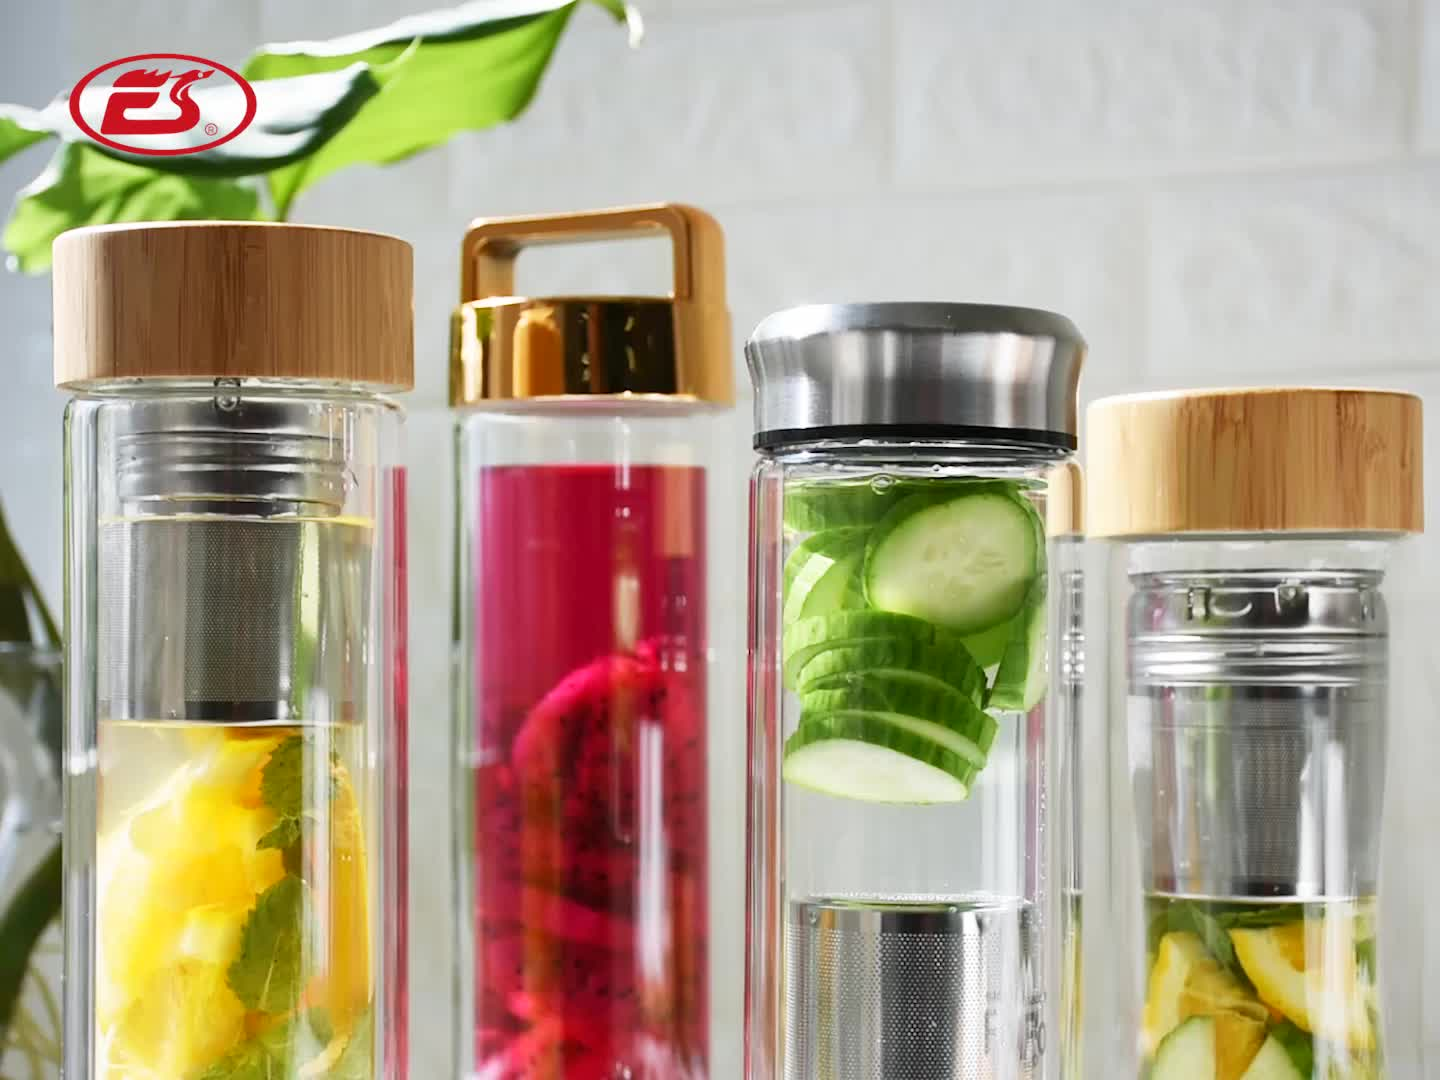 EG502 300ML/12OZ Eco-friendly leisure drinking glass water bottle with tea infuser